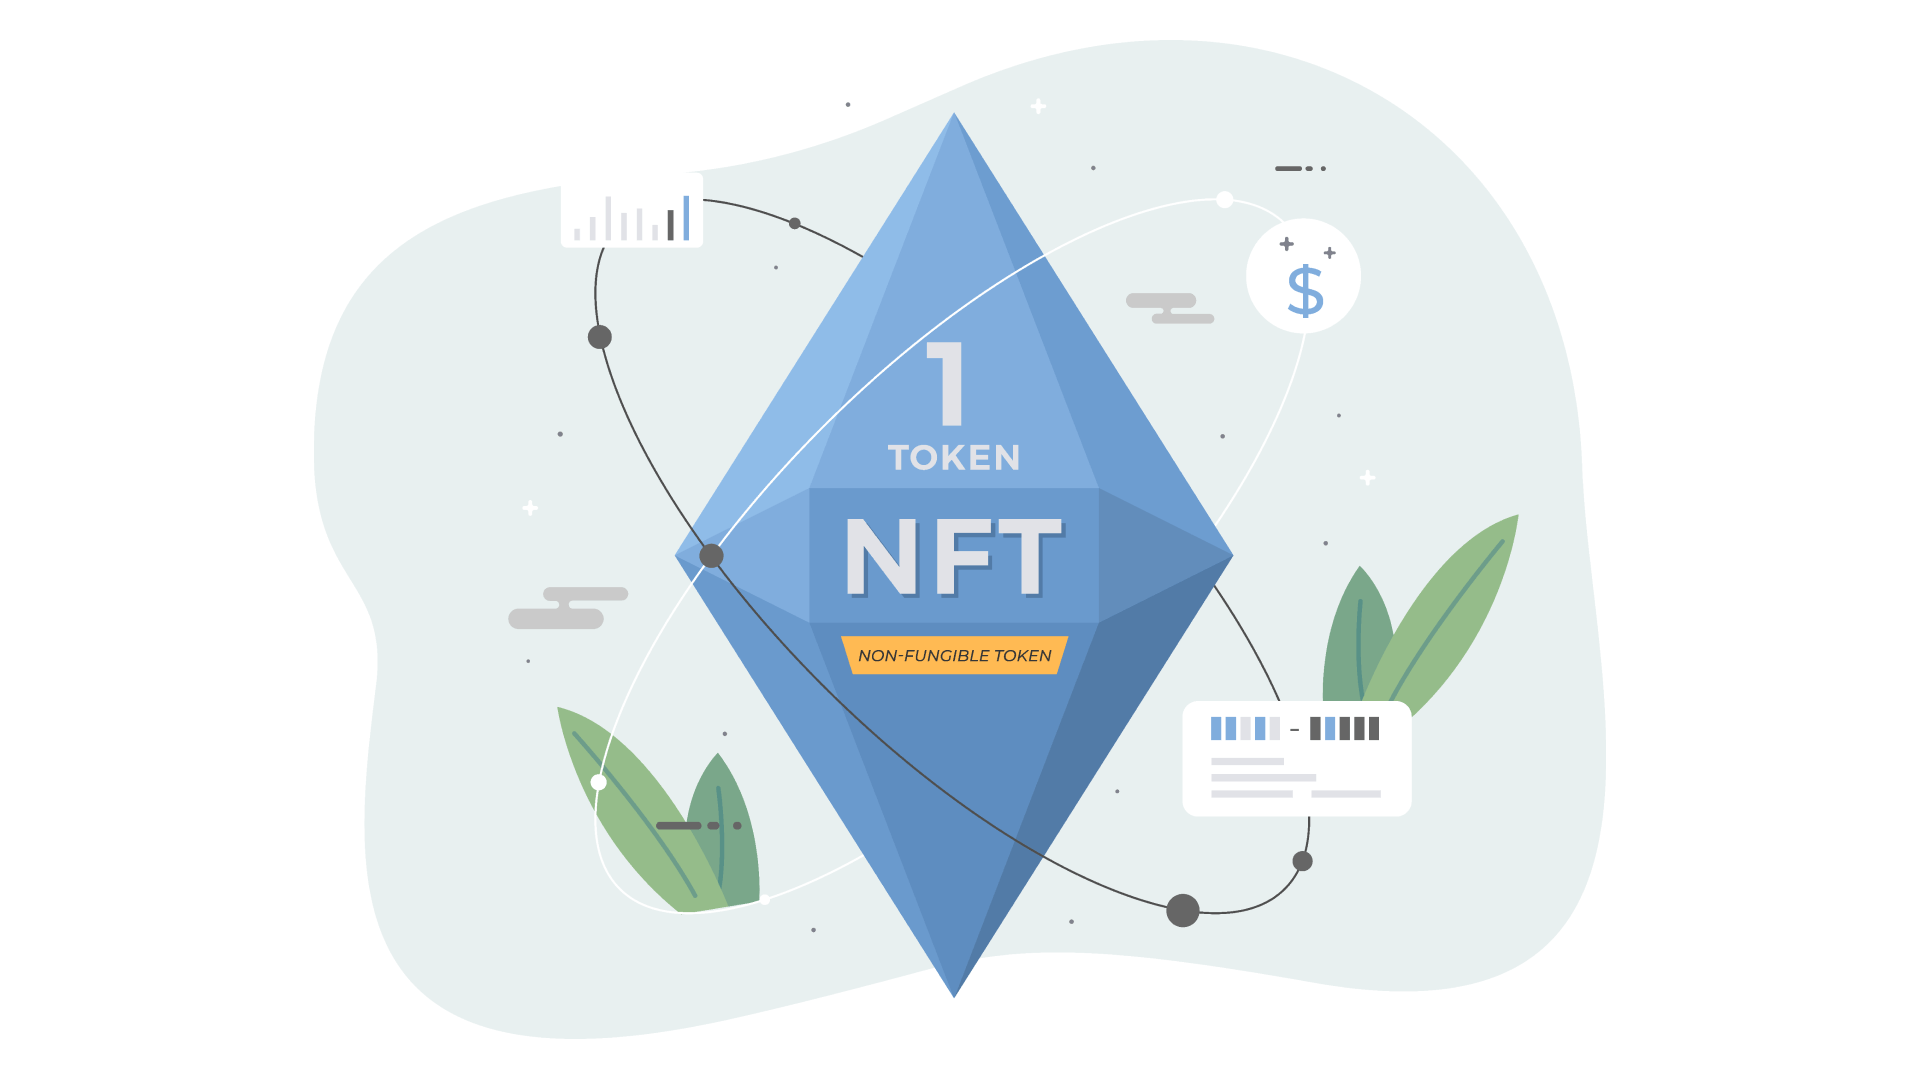 Six qualities that best characterize, describe, and explain non-fungible tokens marketplace.